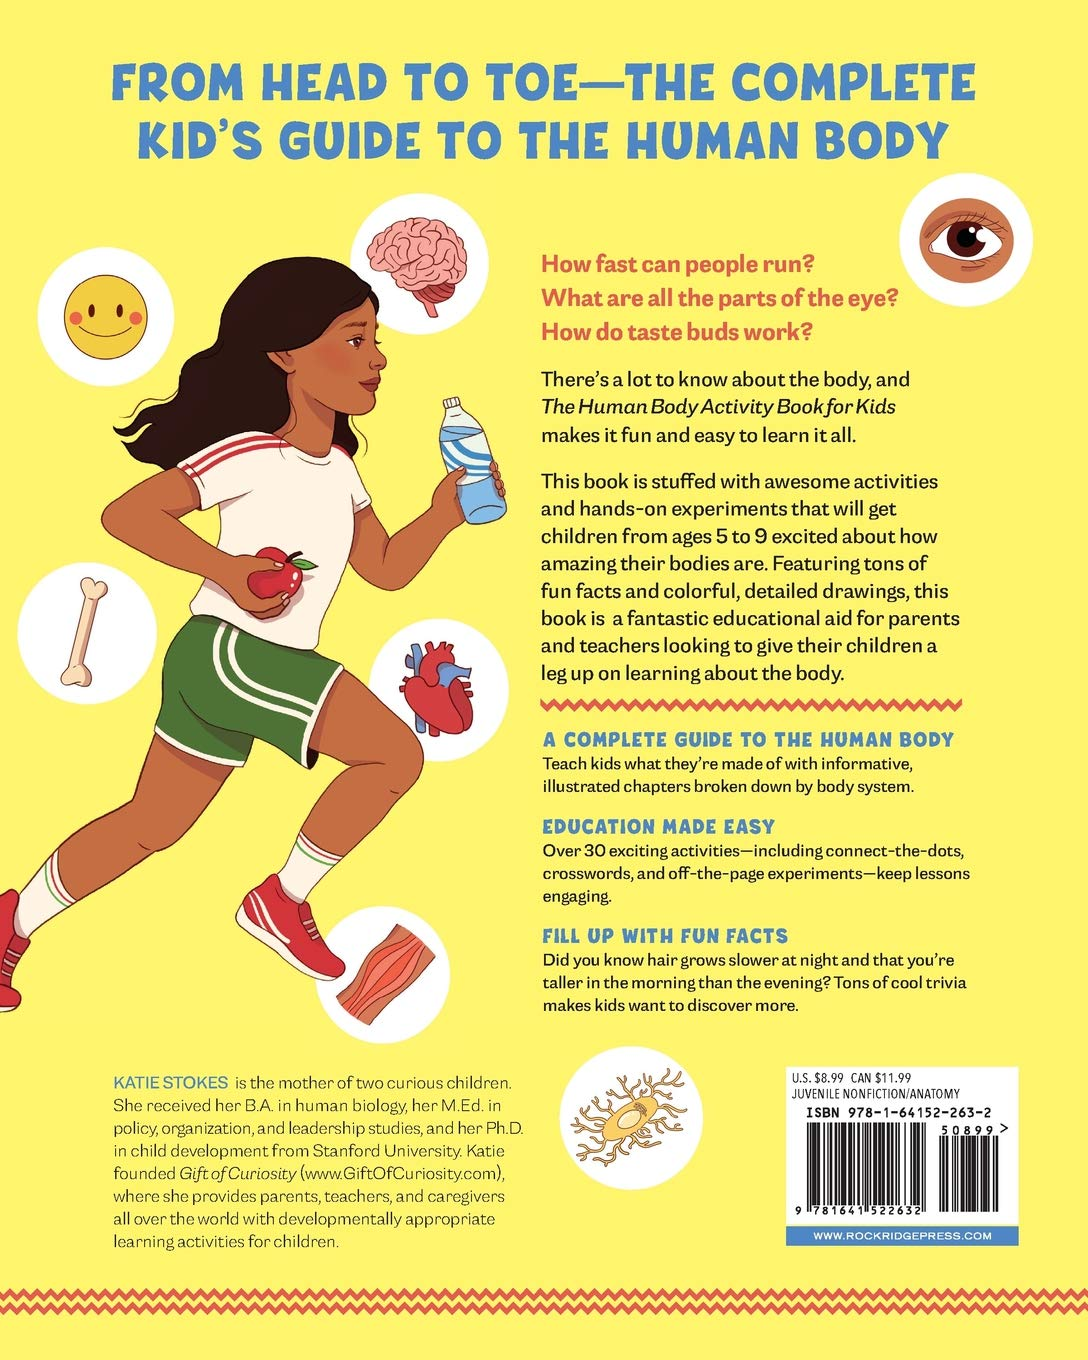 Human Body Activity Book For Kids Hands On Fun For Grades K 3